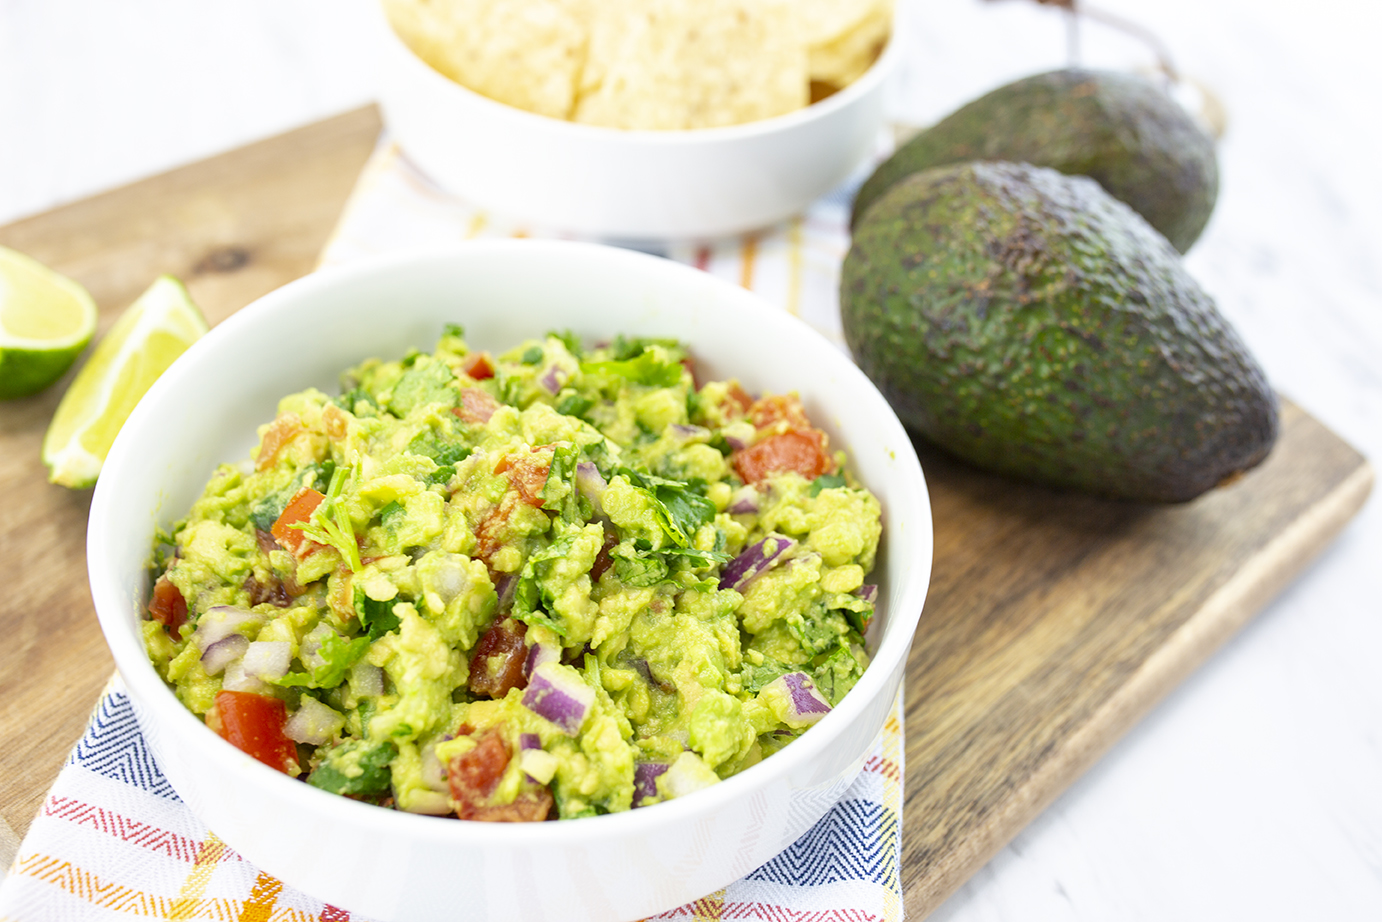 Bowl of Guacamole served with tortilla chips